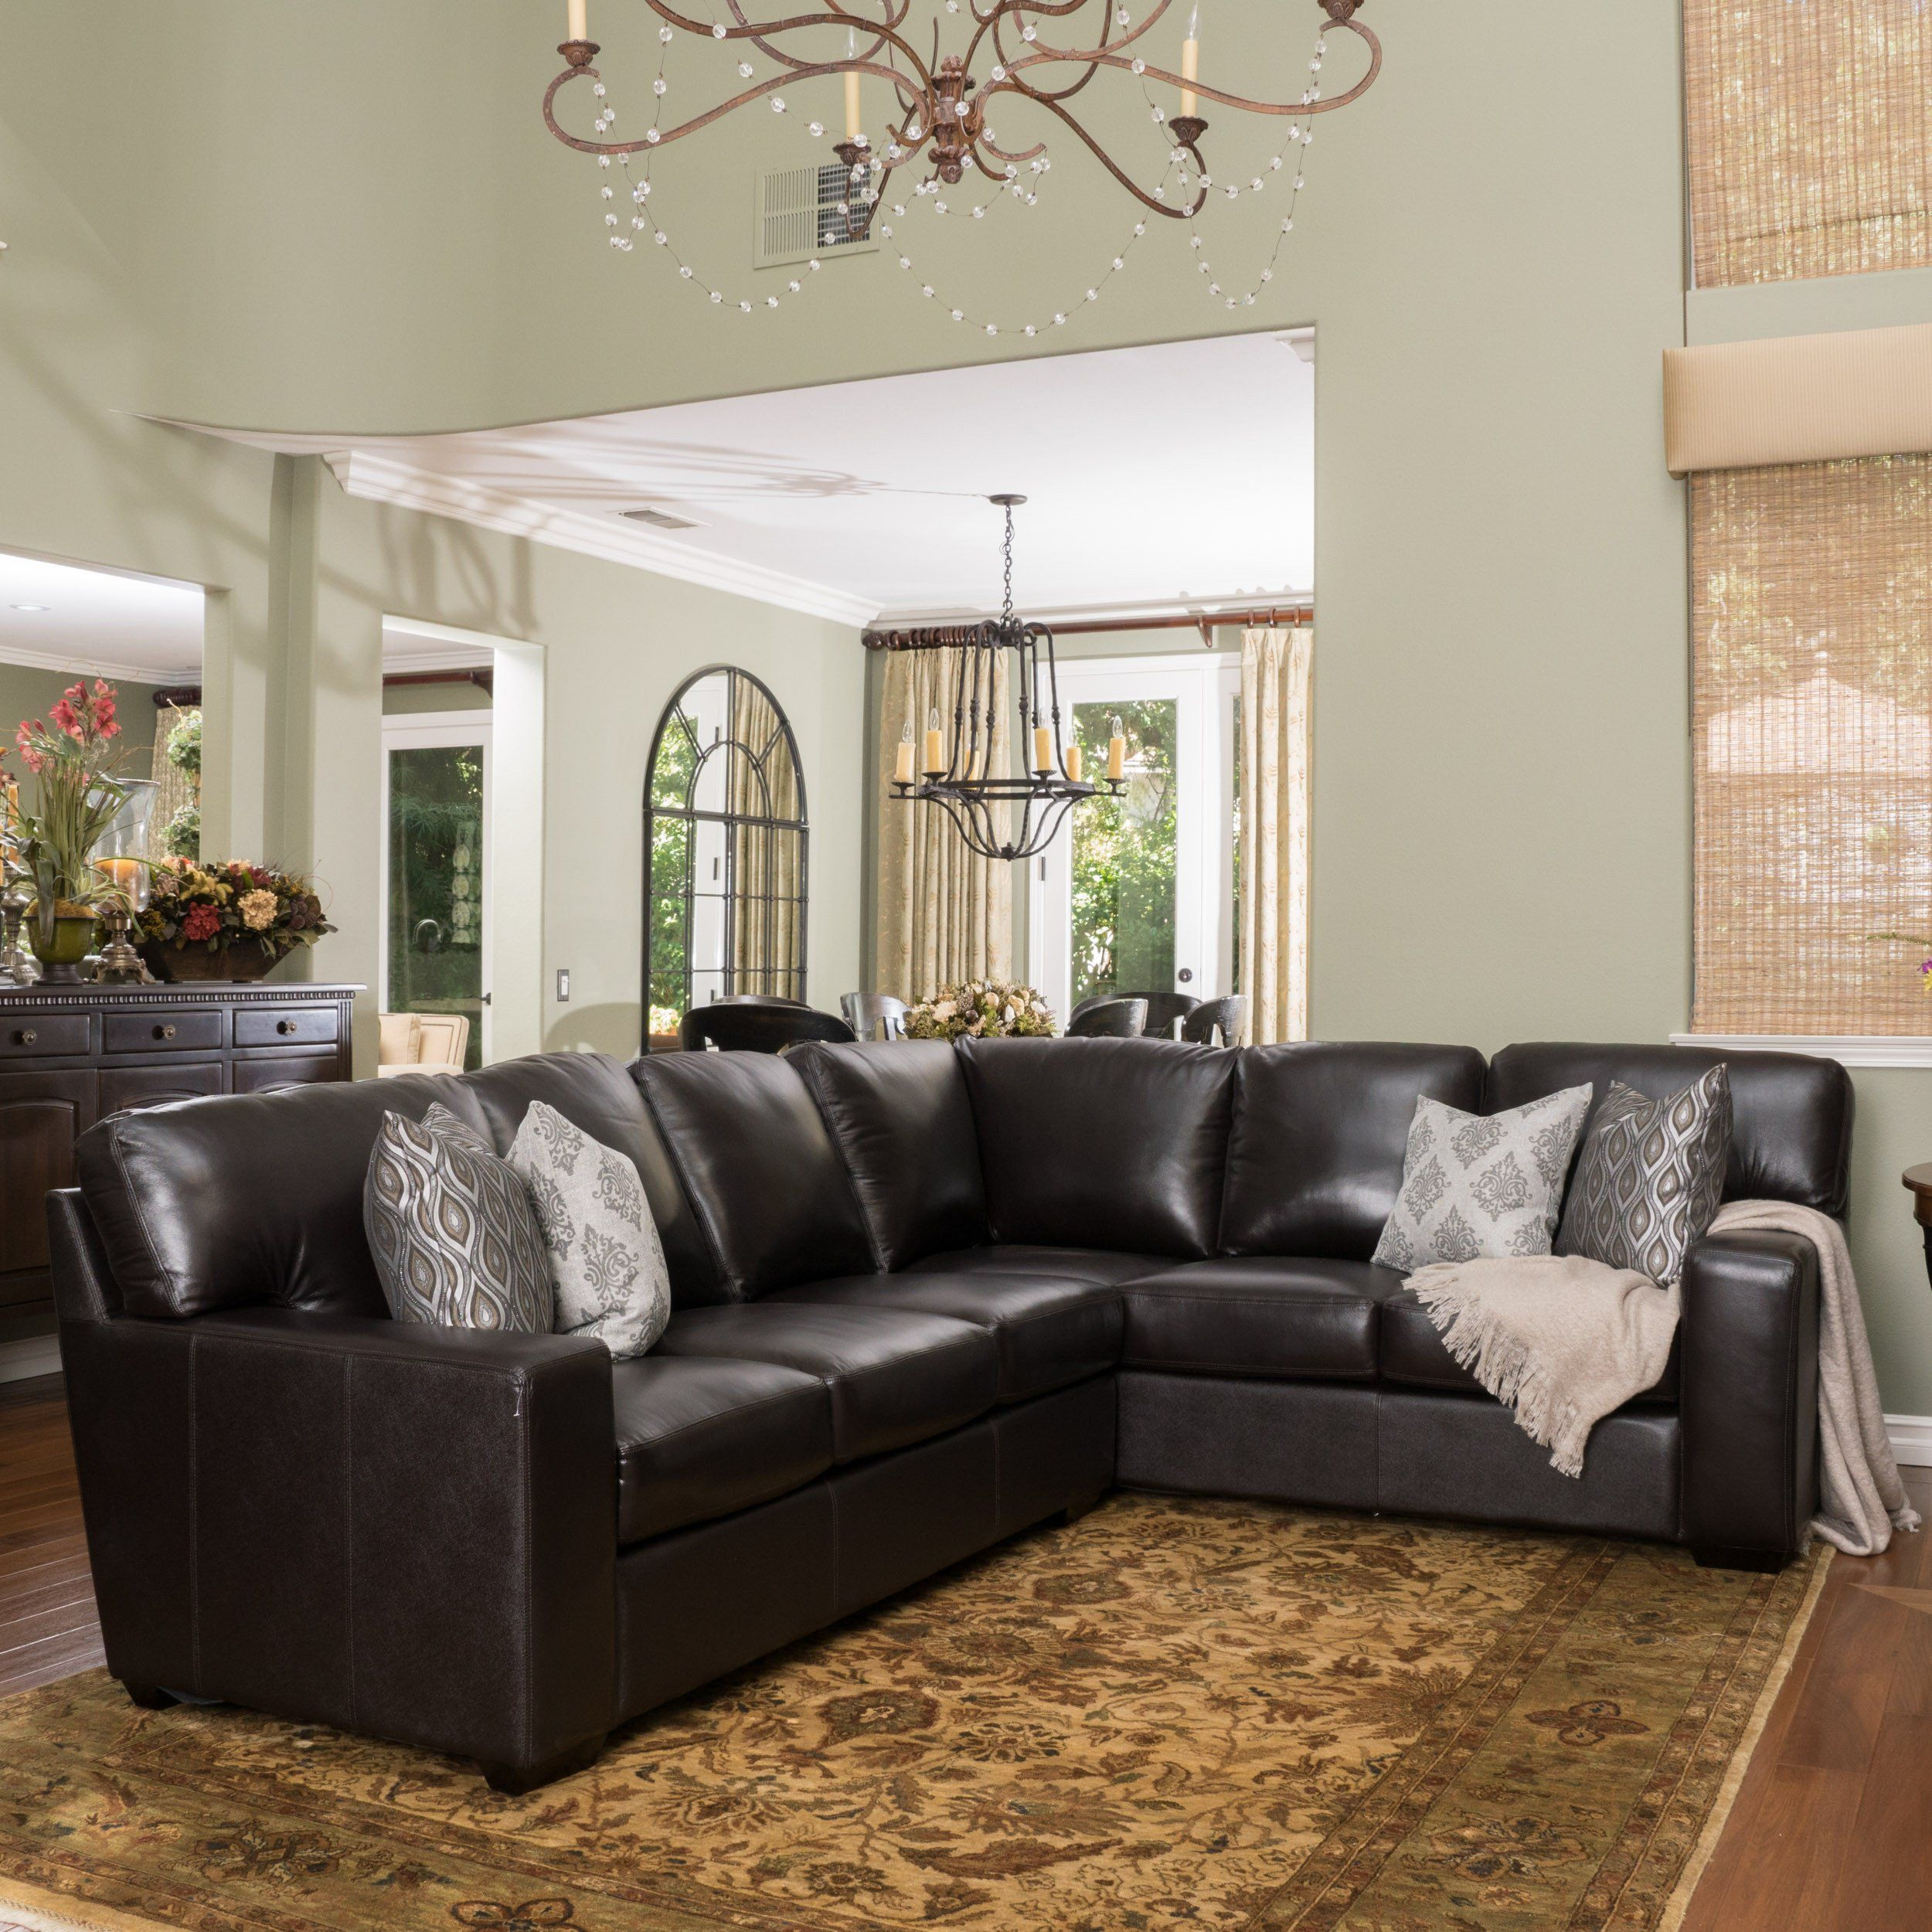 Vanessa Top Grain L Shaped Leather Sectional Leather Couches Living Room Transitional Living Room Design Couches Living Room